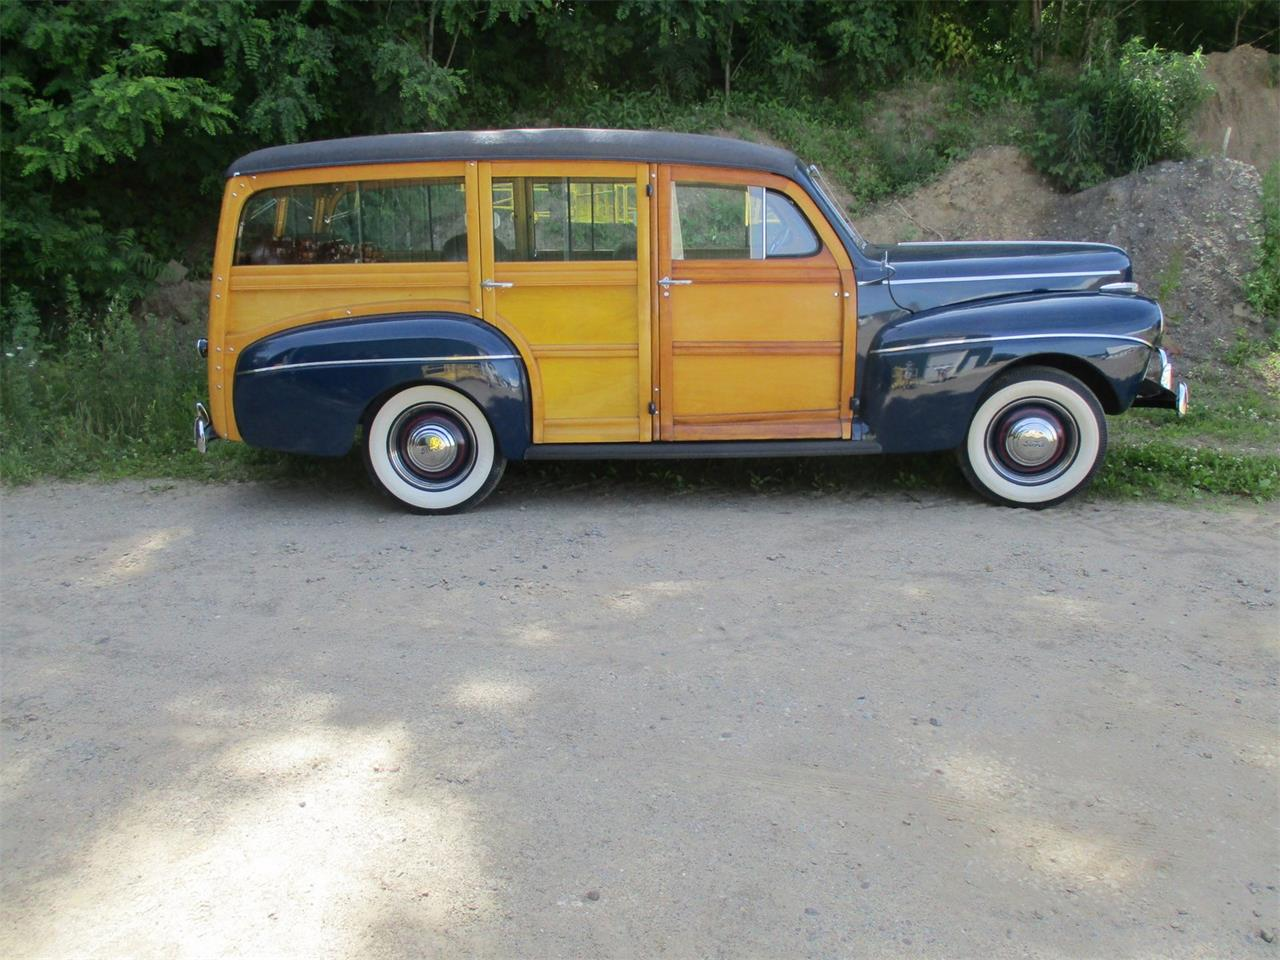 1941 Ford Super Deluxe (CC-1236752) for sale in Bedford Hts., Ohio